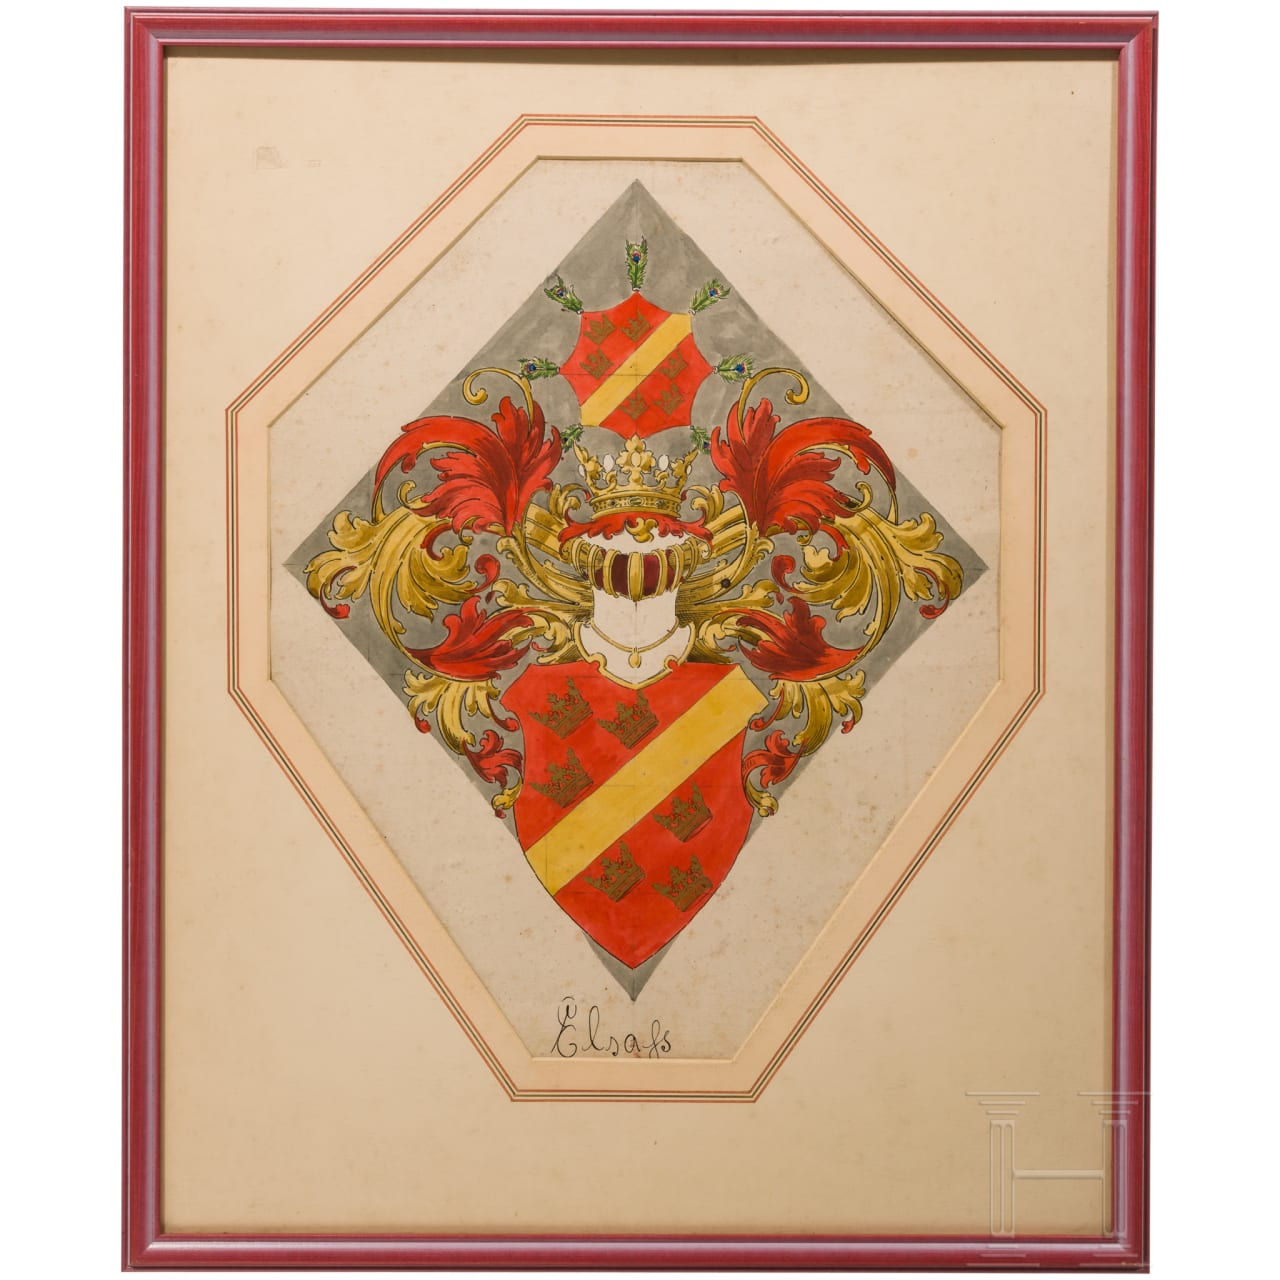 Ernst Krahl (1858 - 1923) - Alsace coat of arms